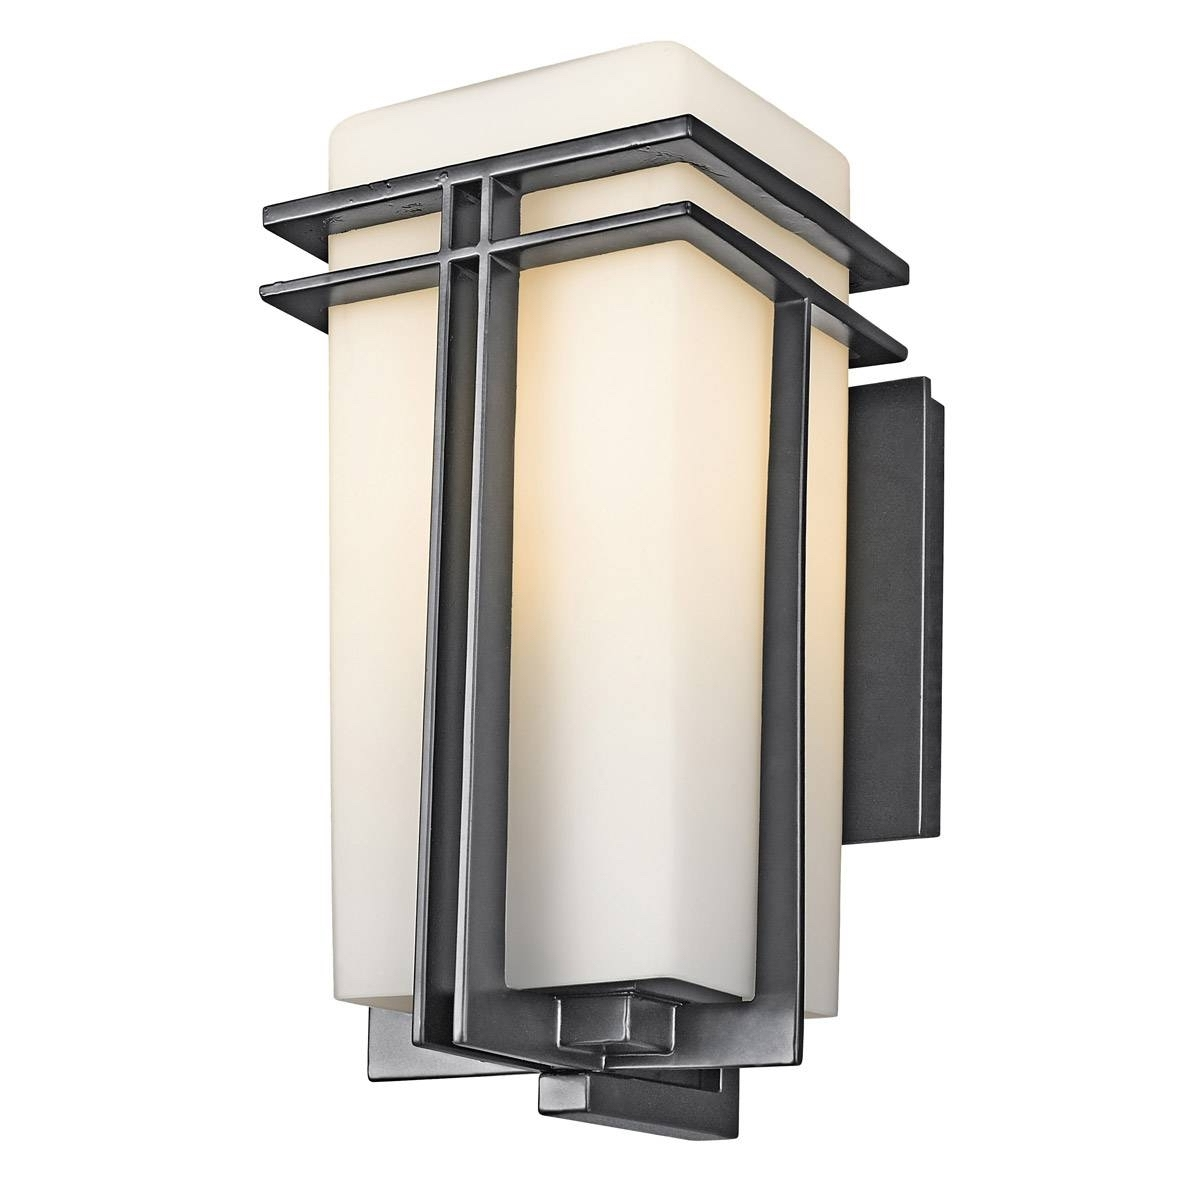 Outdoor Wall Lighting At Houzz With Regard To Fashionable Exterior Wall Light Fixtures Pacificfg Com Outdoor Sconce Lighting (View 15 of 20)